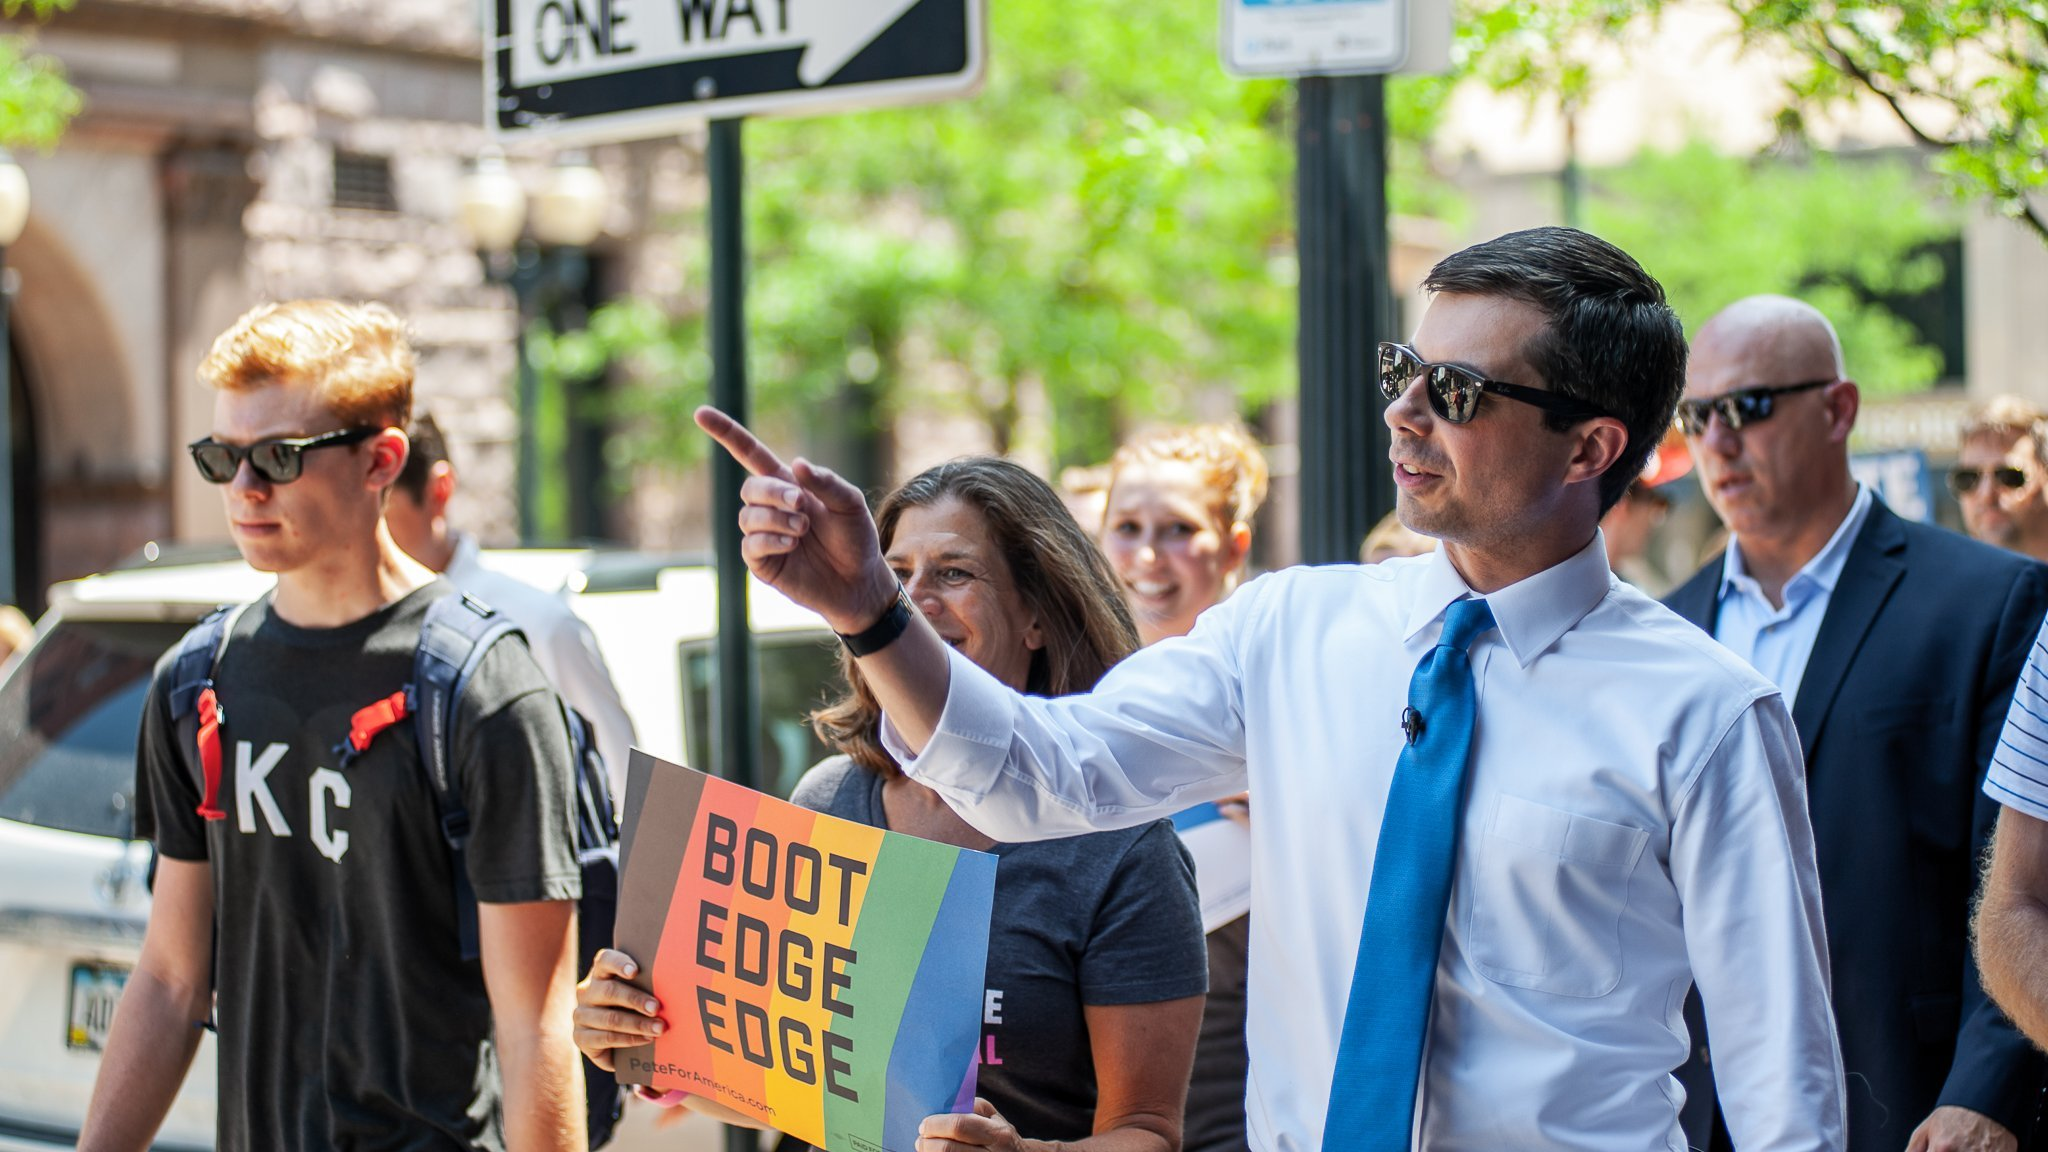 Presidential candidate Pete Buttigieg leading supporters through downtown Cedar Rapids, Iowa